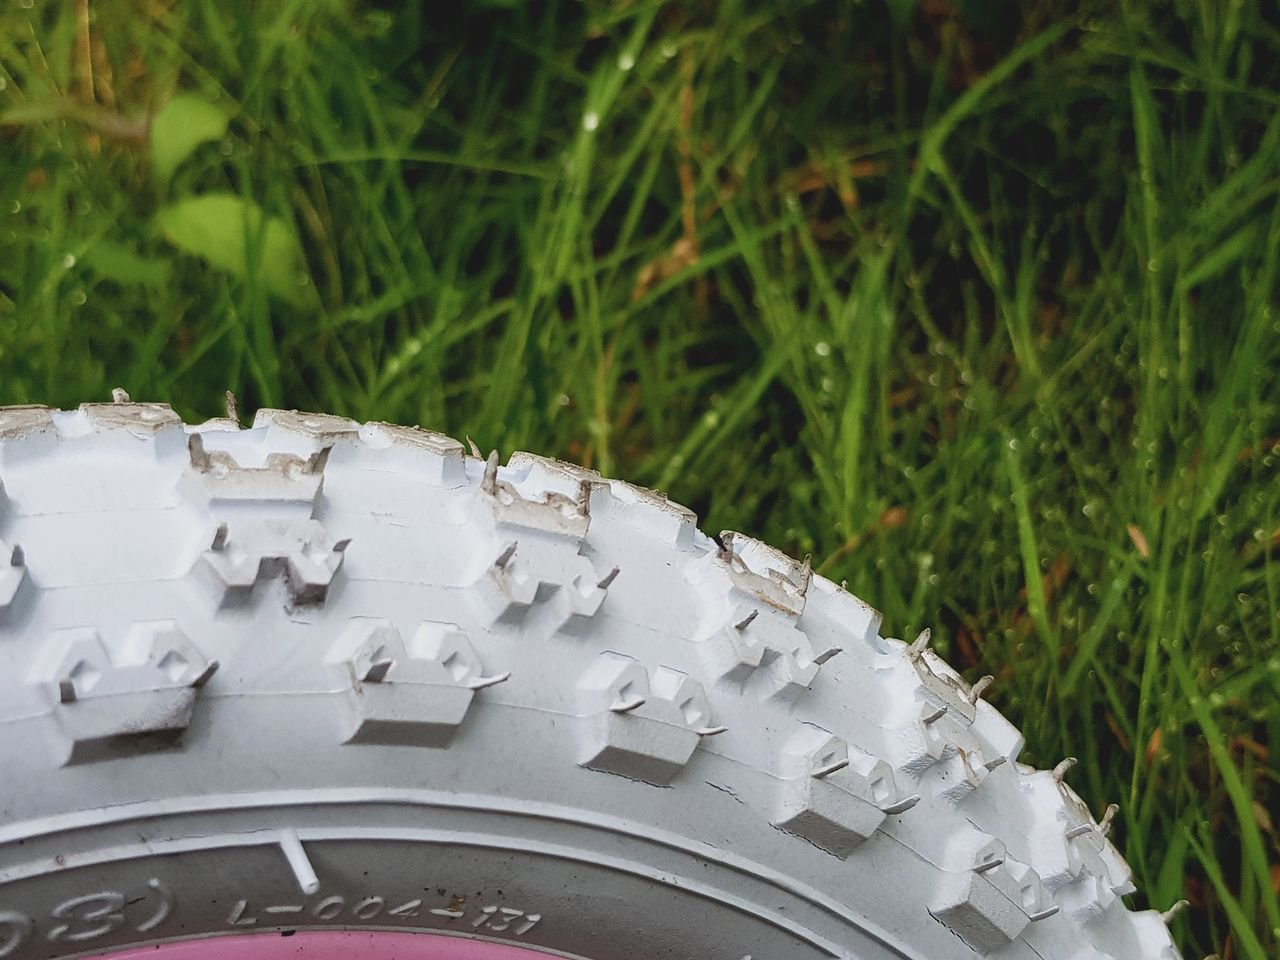 No People Outdoors Grass Day Close-up Childhood Wheel Tyre Tyre White Tyres Children Childs Bike